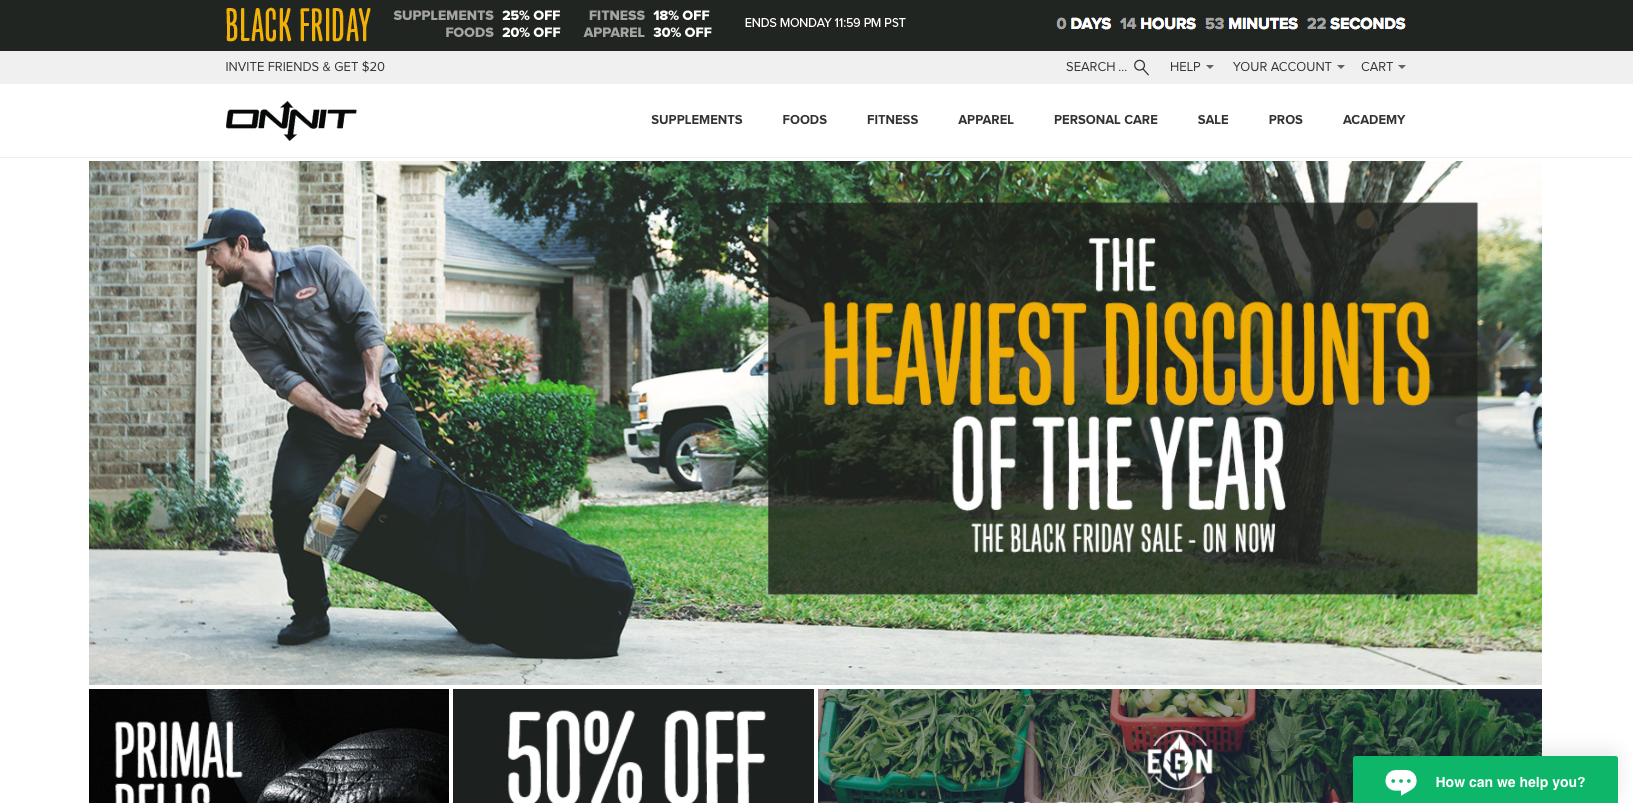 onnit_black_friday_promotion.png